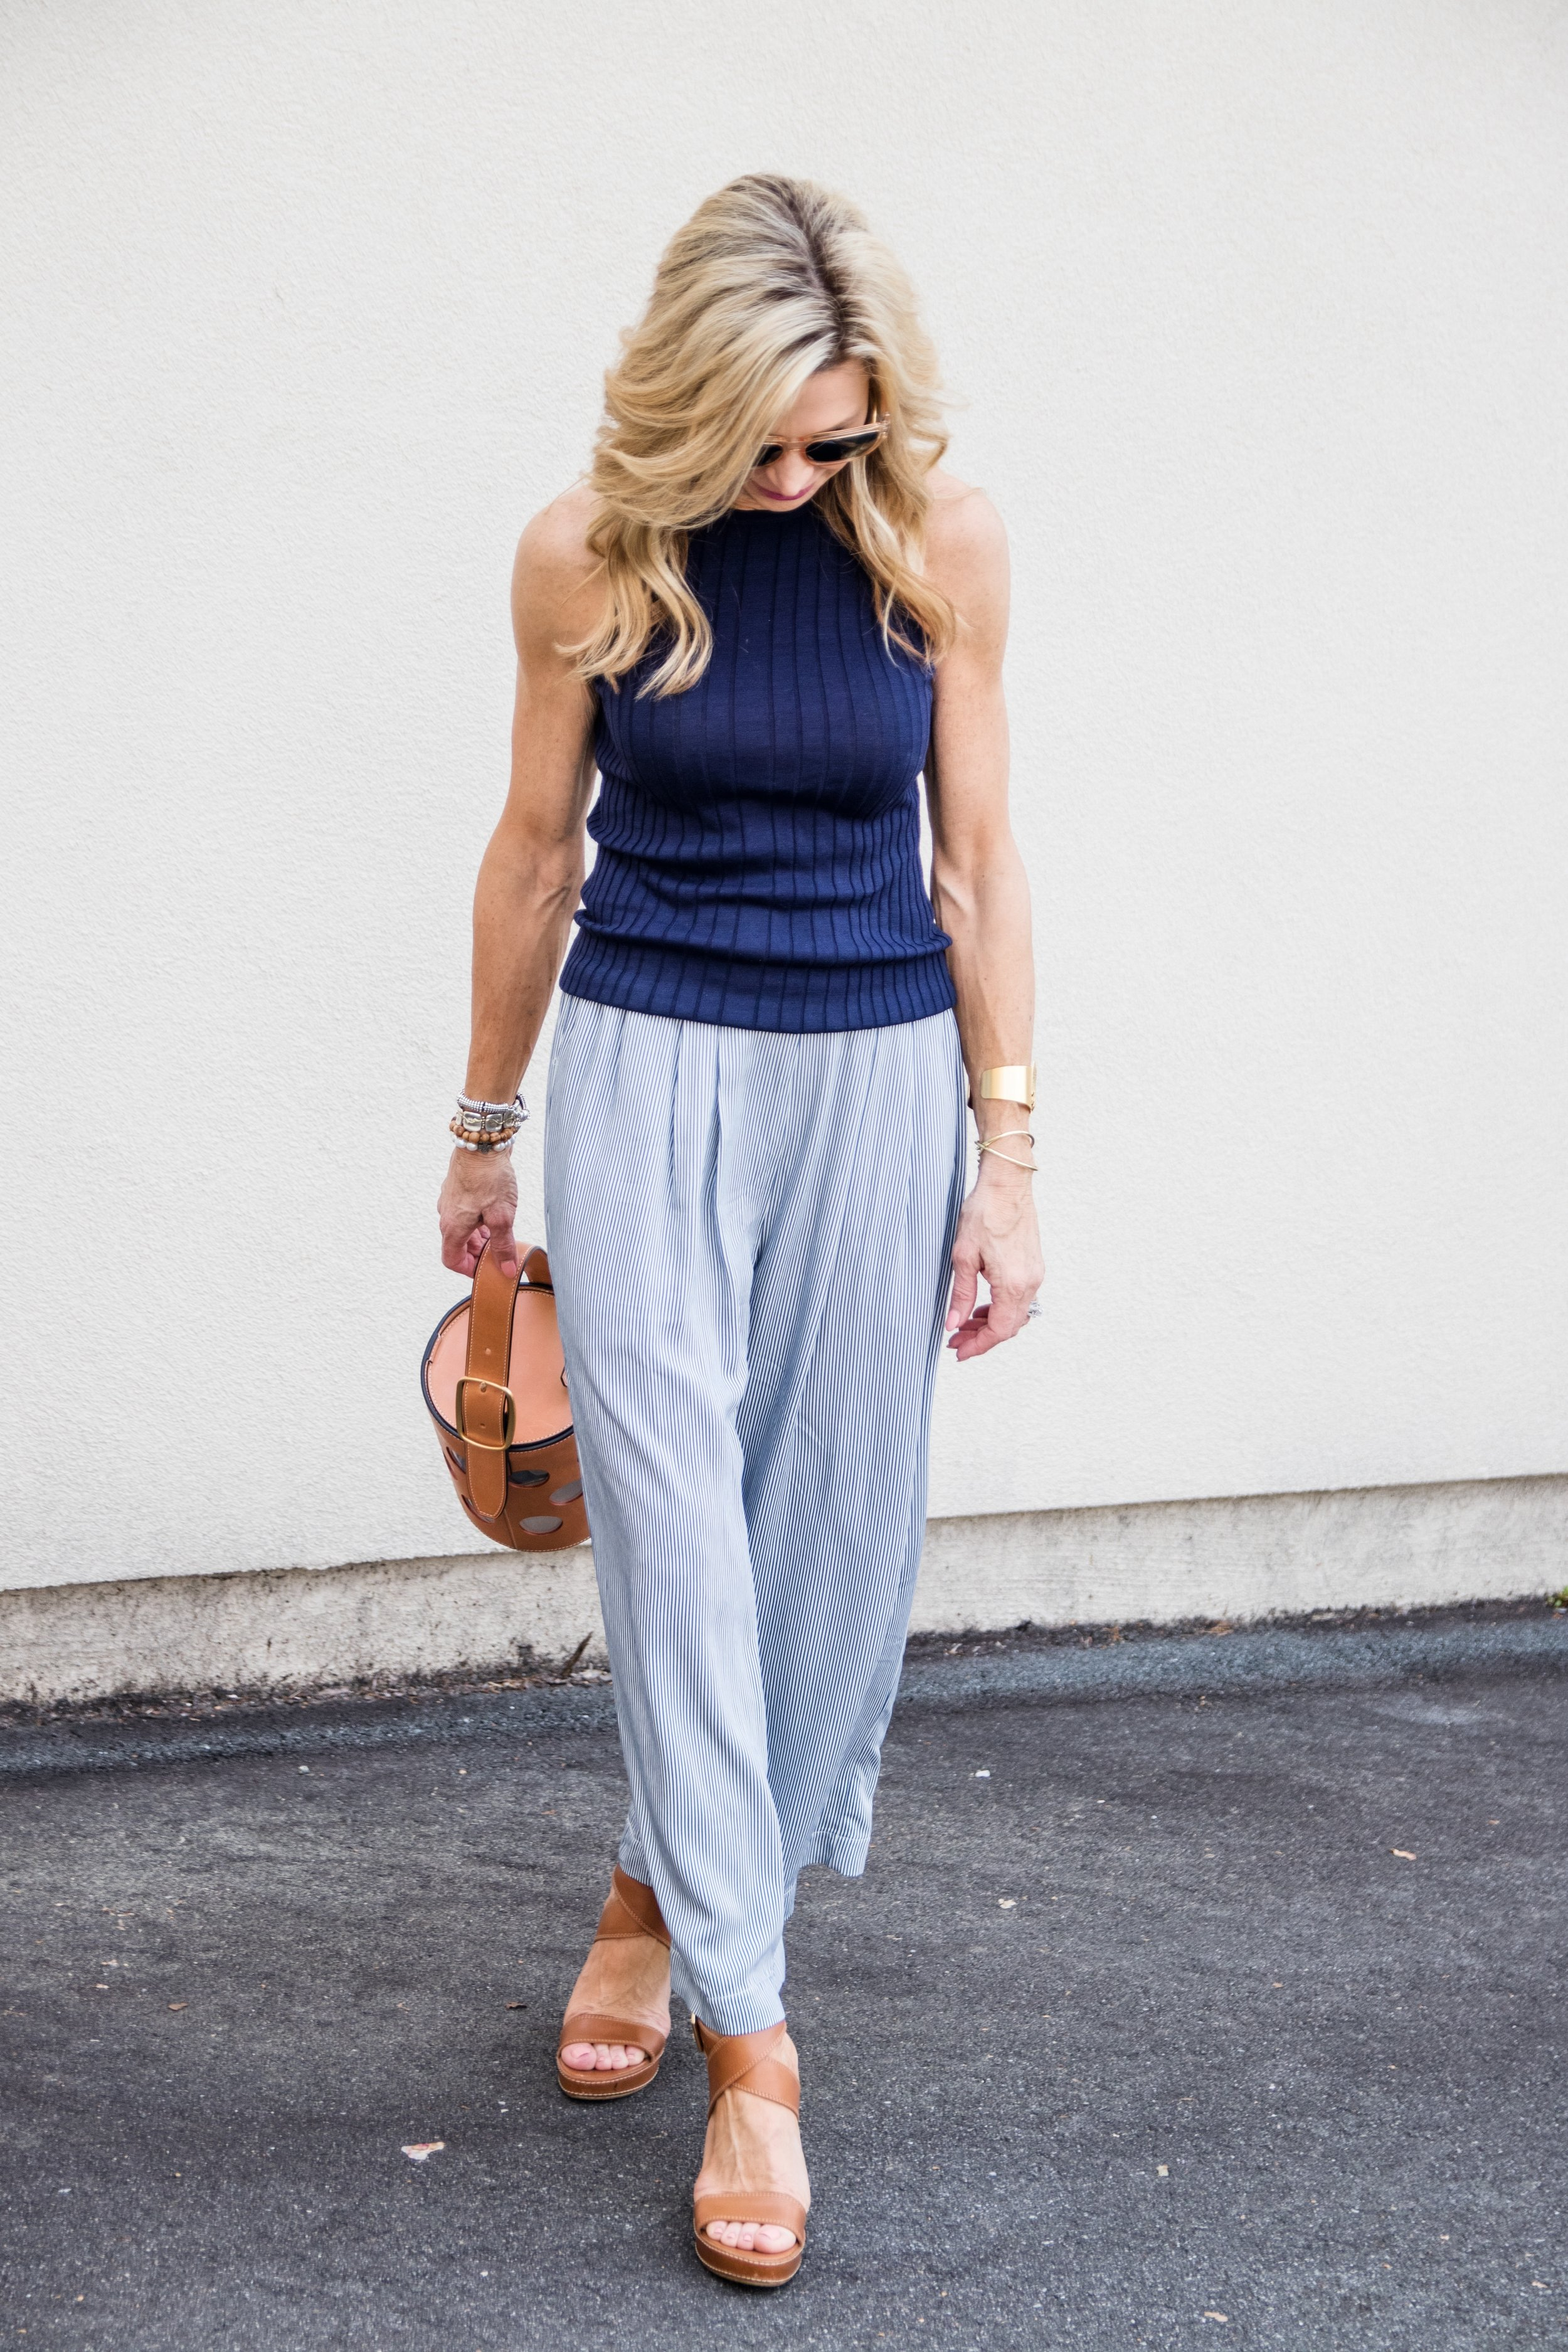 Casual spring outfit - Trina Turk top